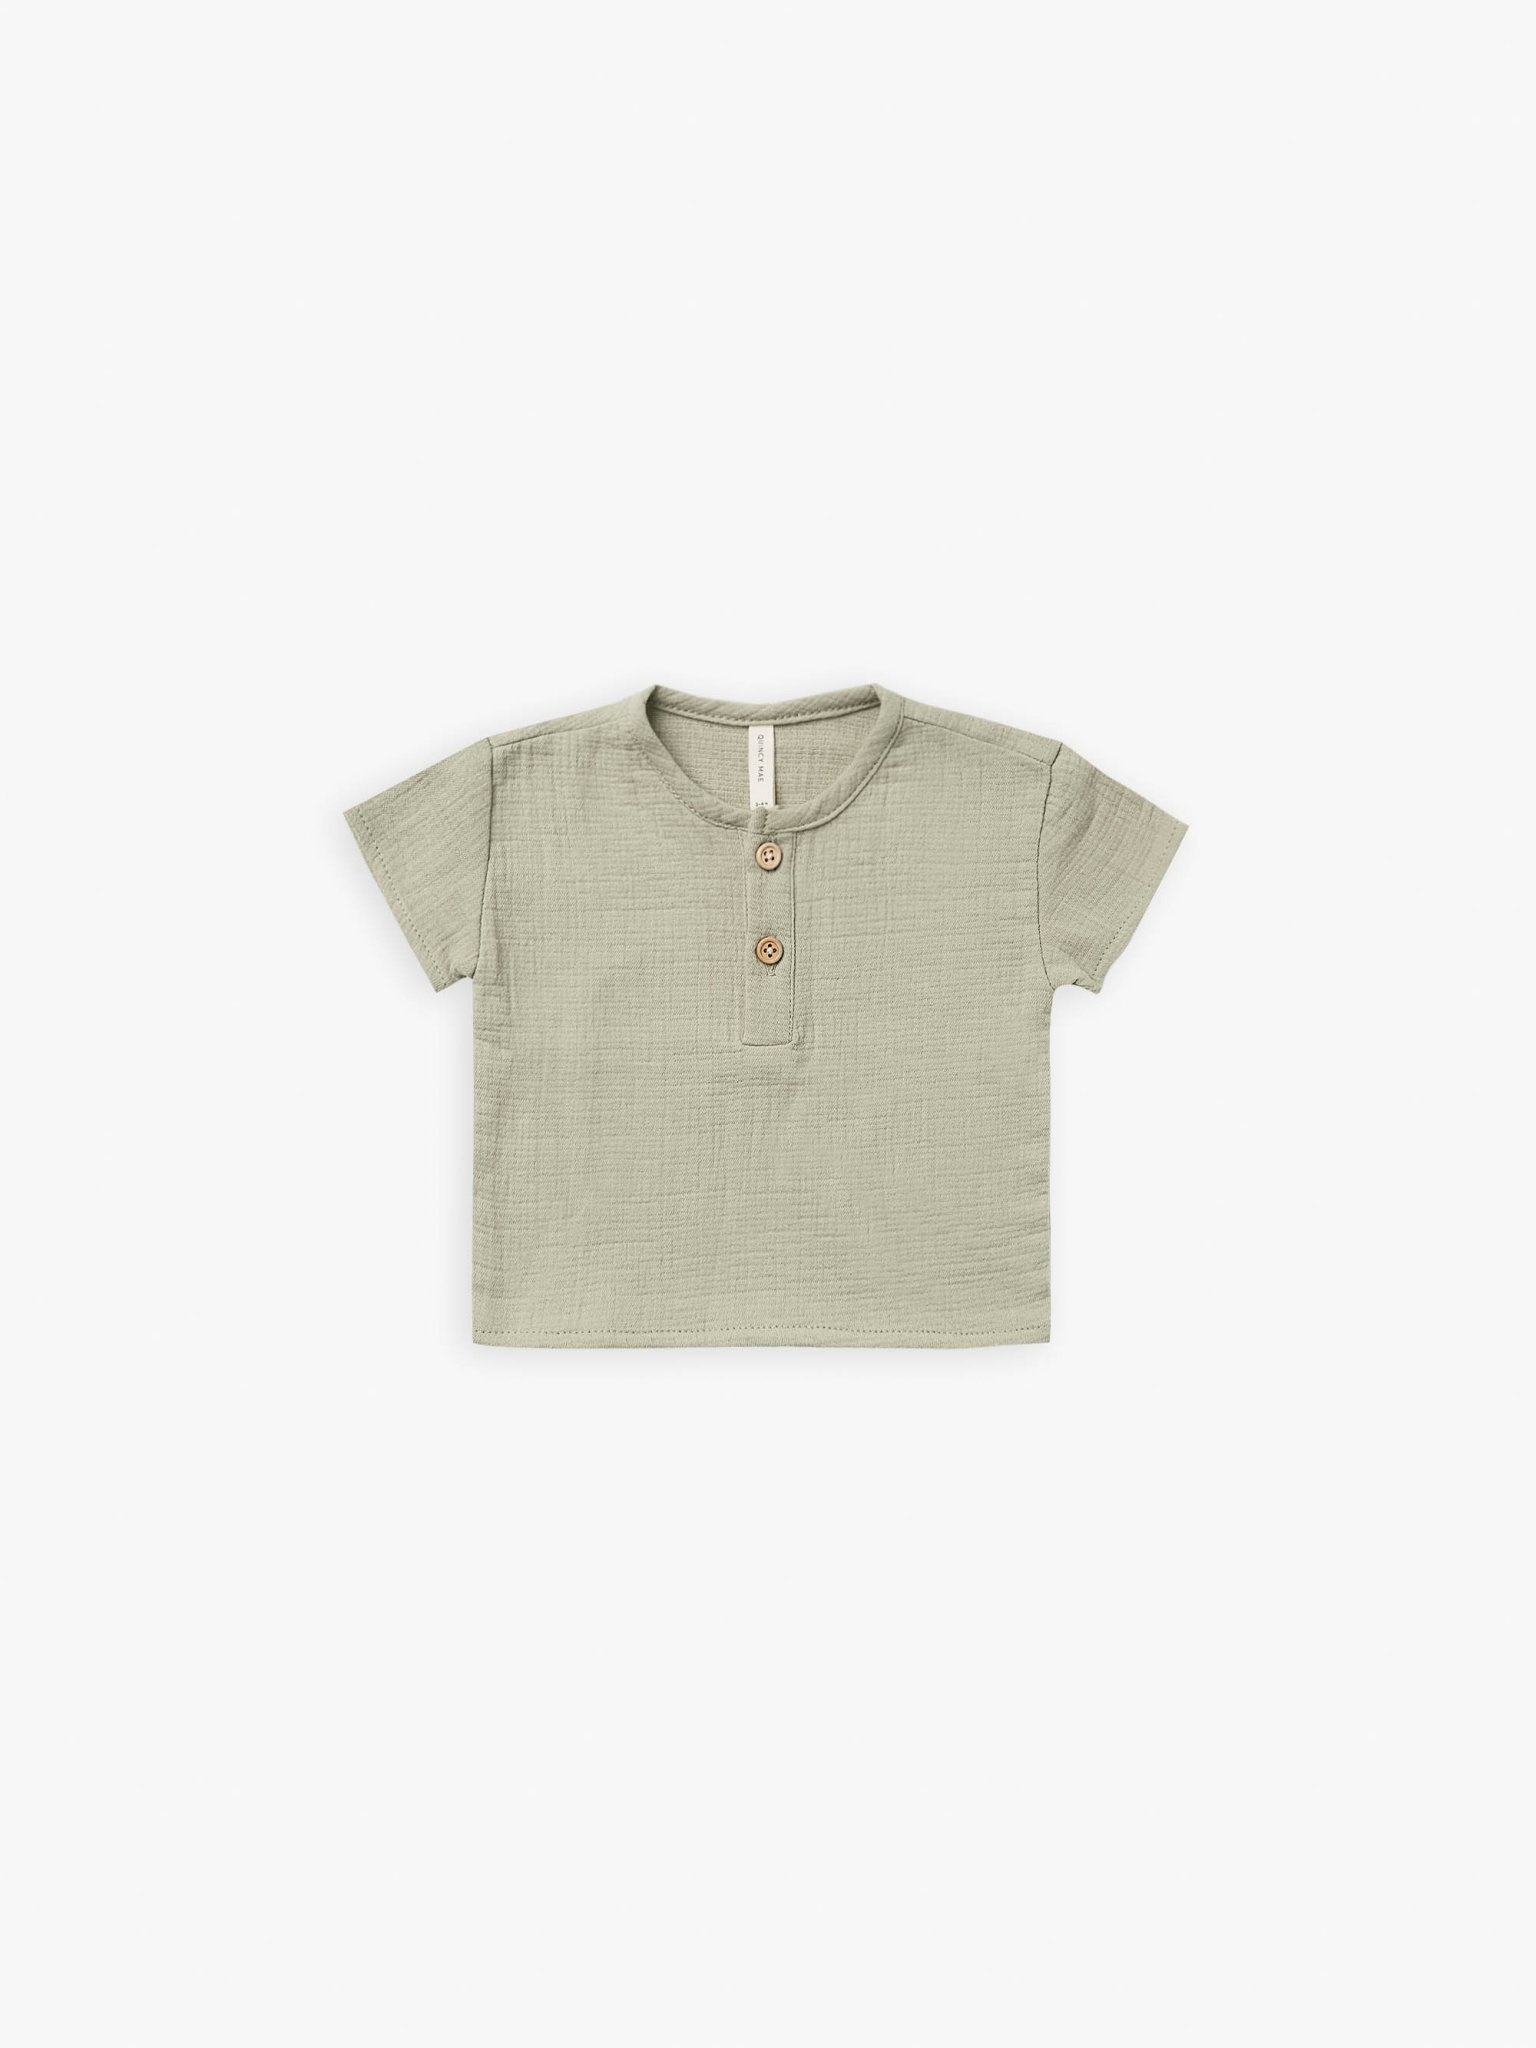 Quincy Mae Quincy Mae | Woven Henry Top Sage